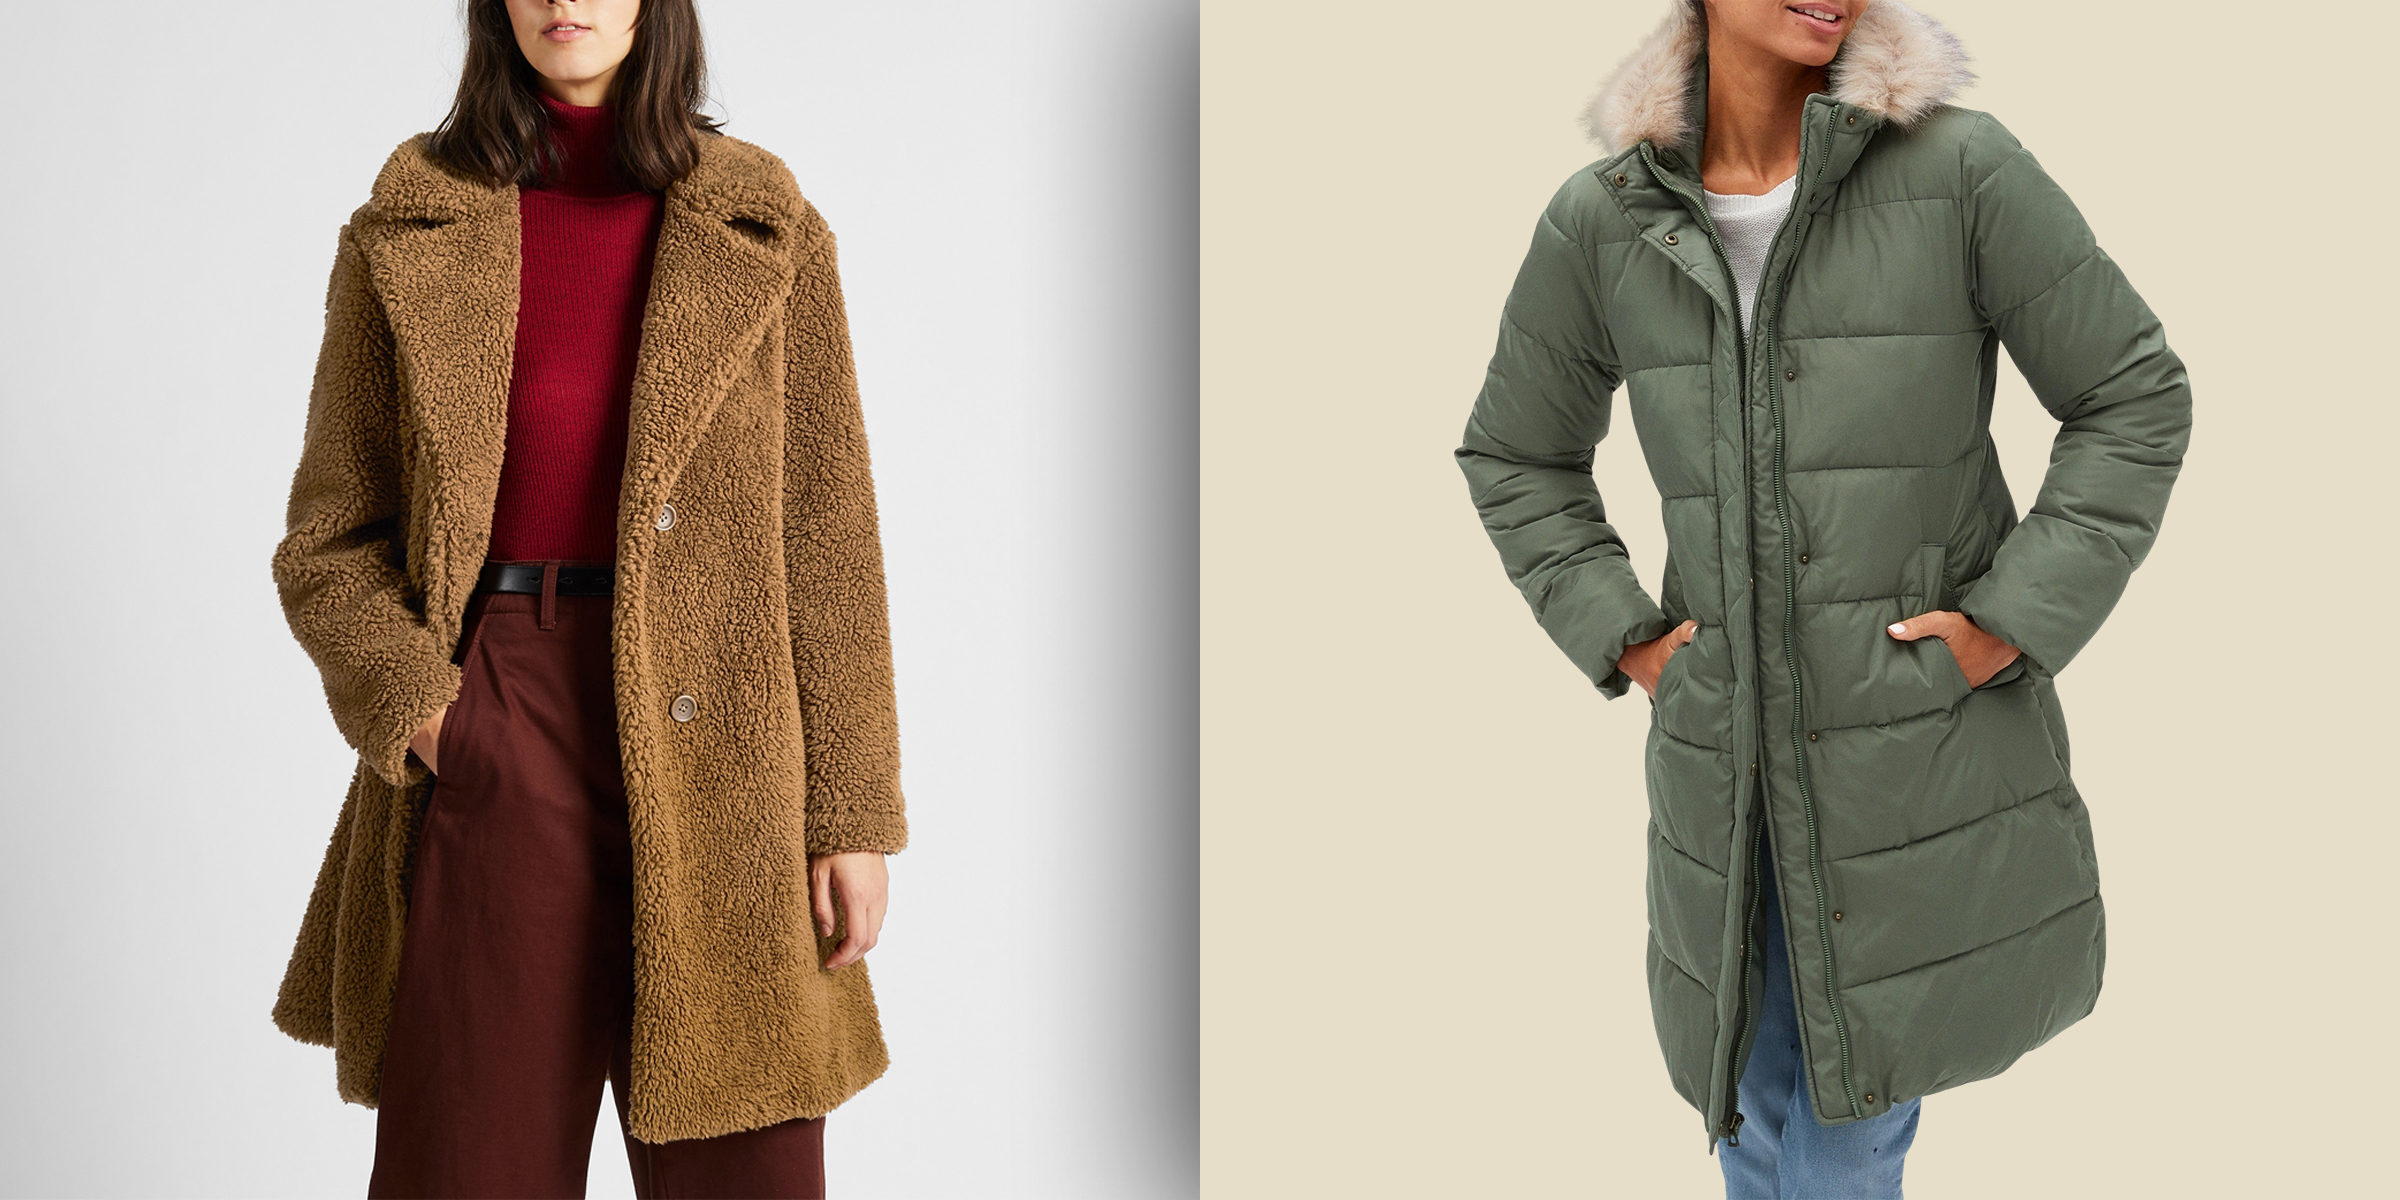 Best winter coats for women under $150